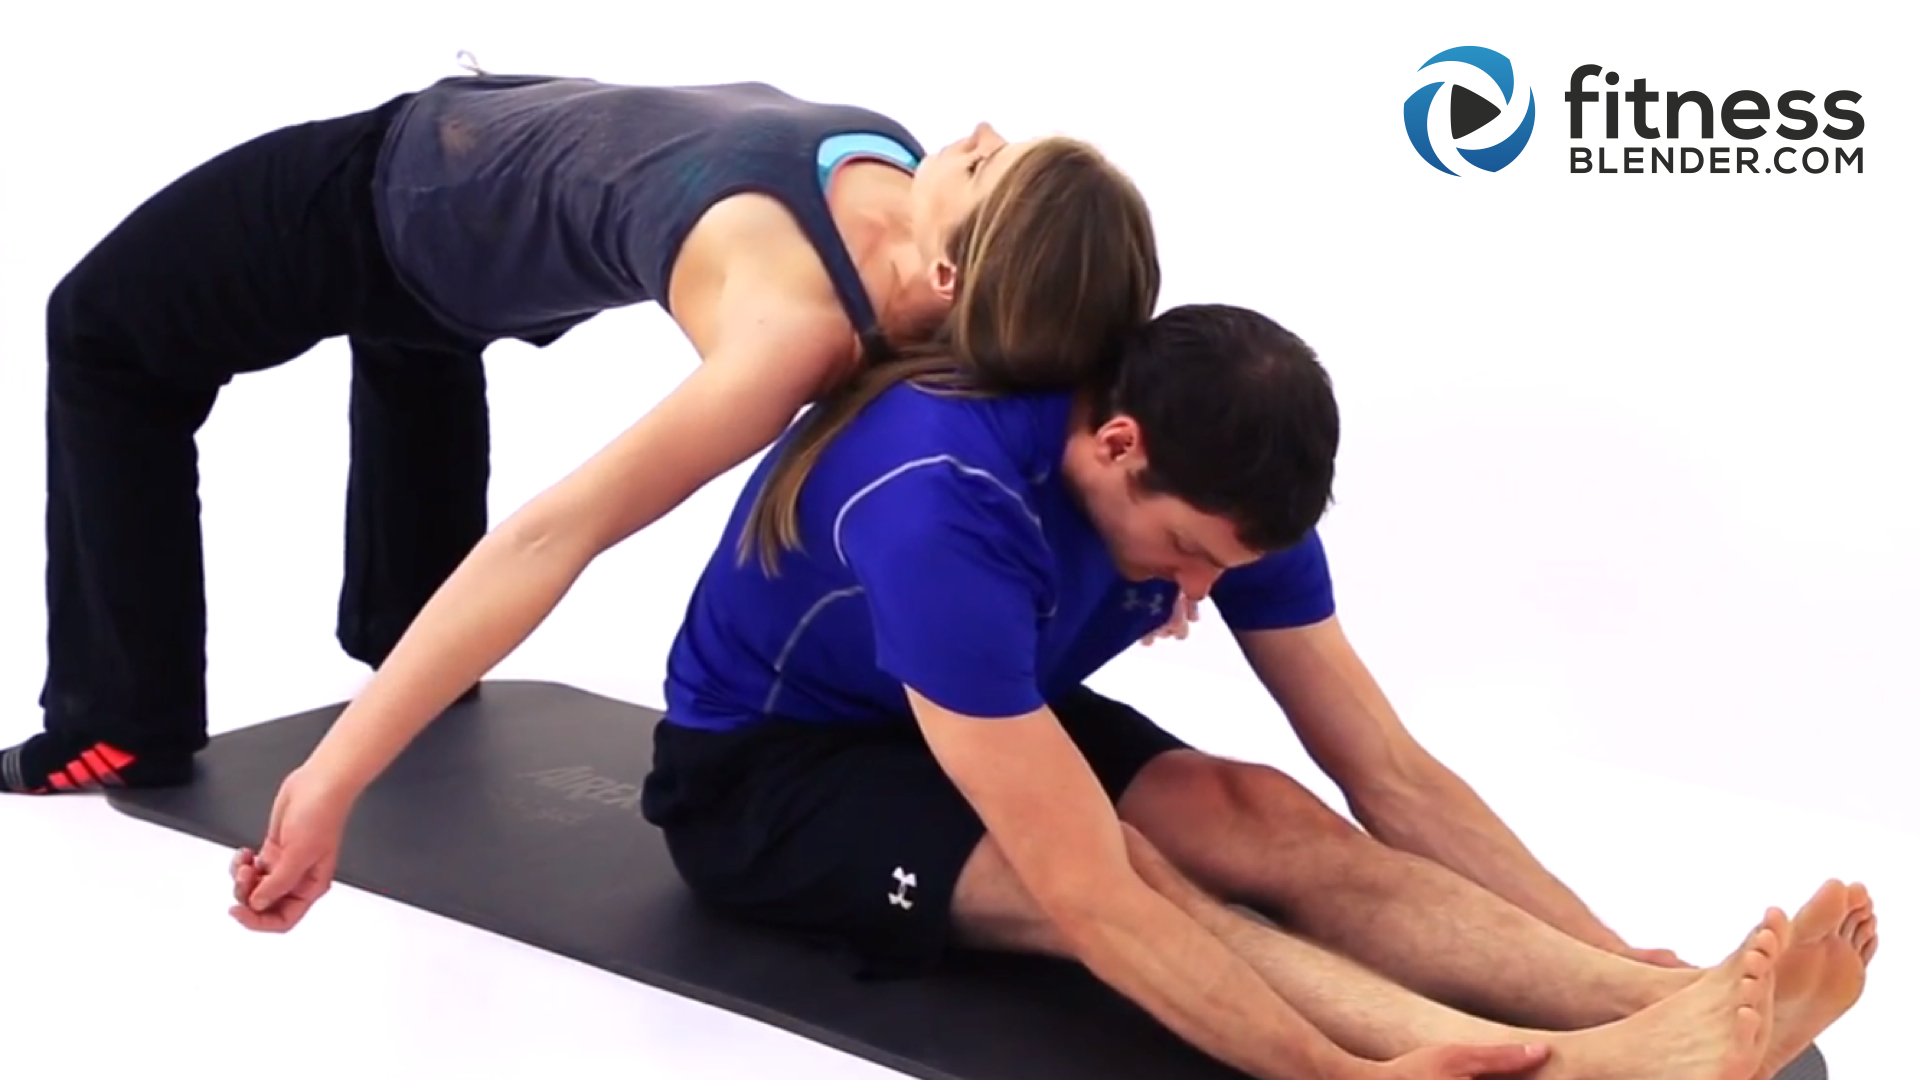 Partner Yoga Workout